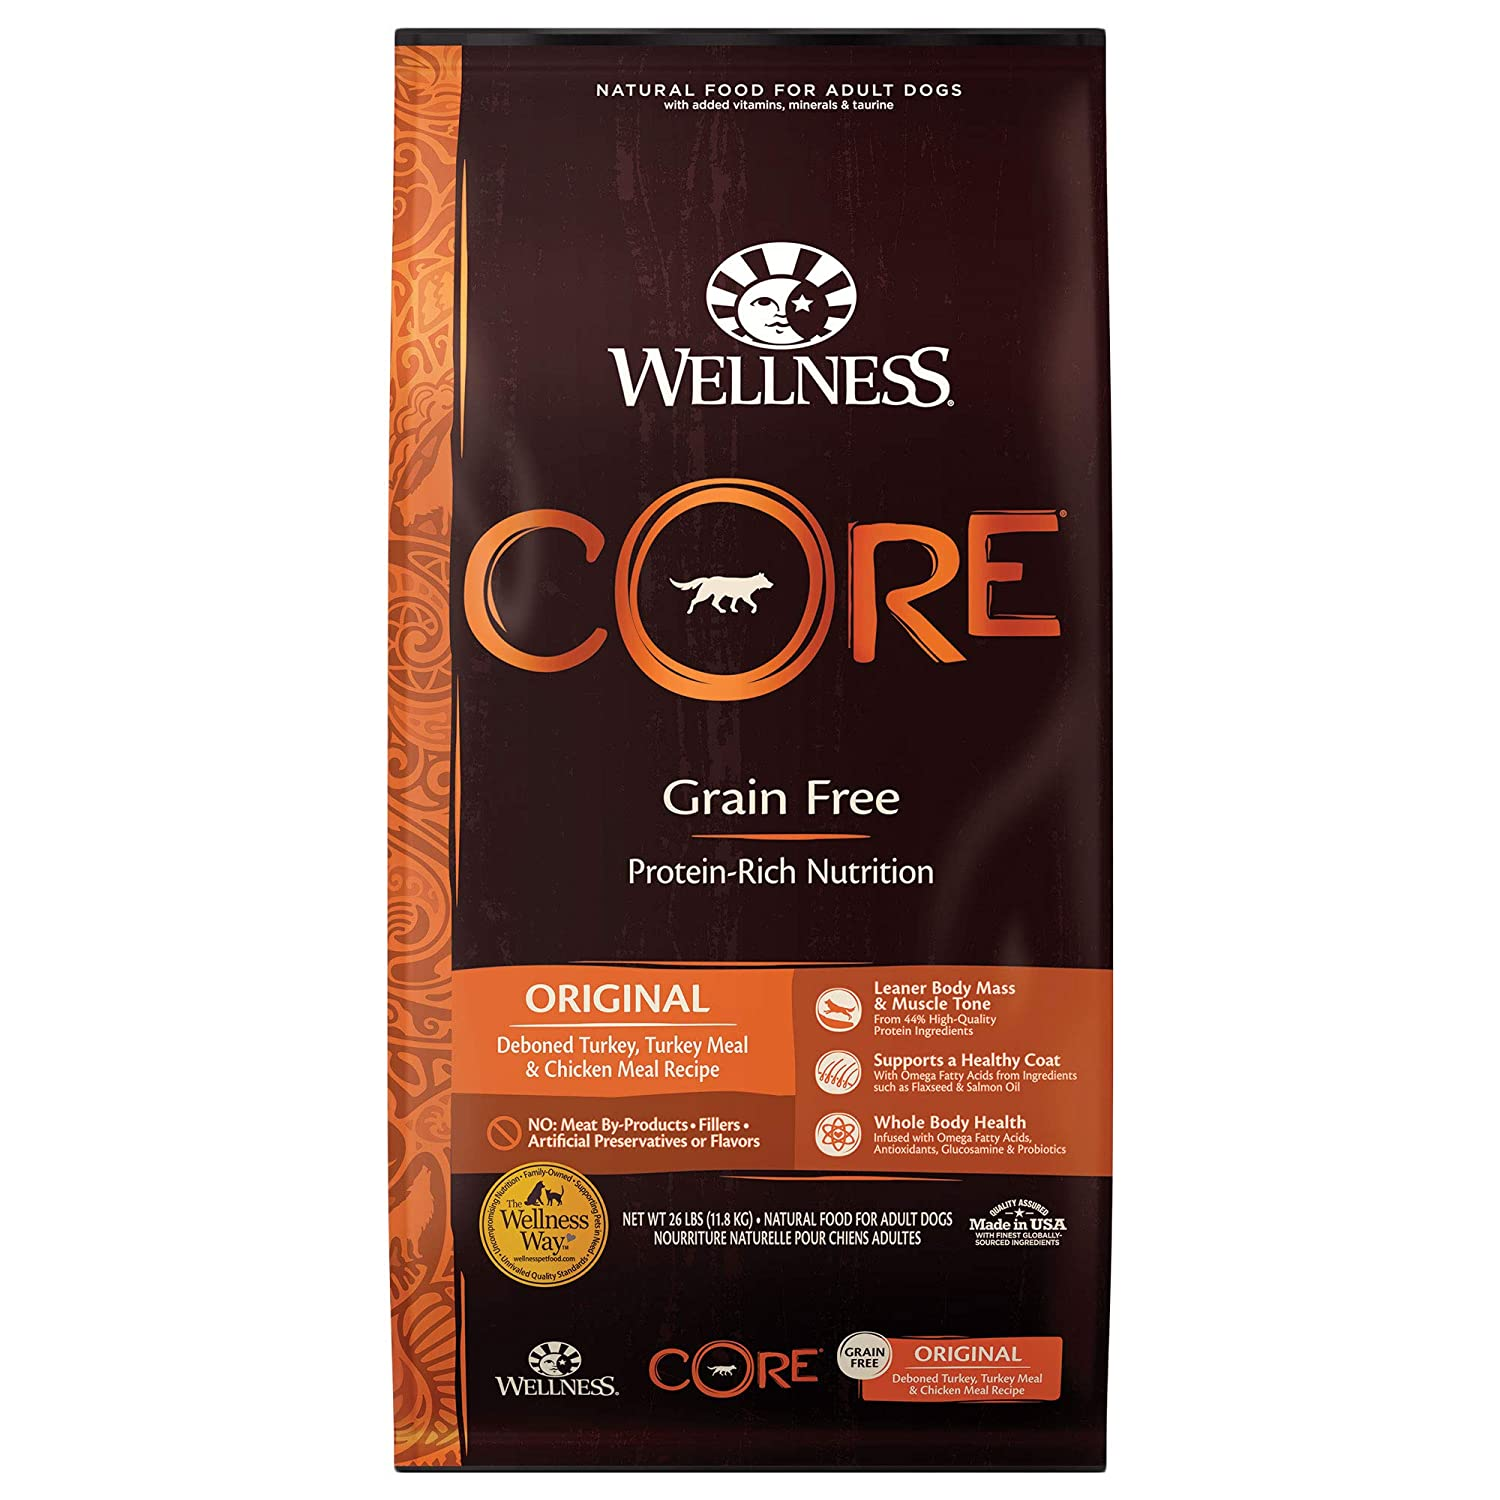 1.Wellness Core Grain-Free Original Deboned Turkey Dry Dog Food